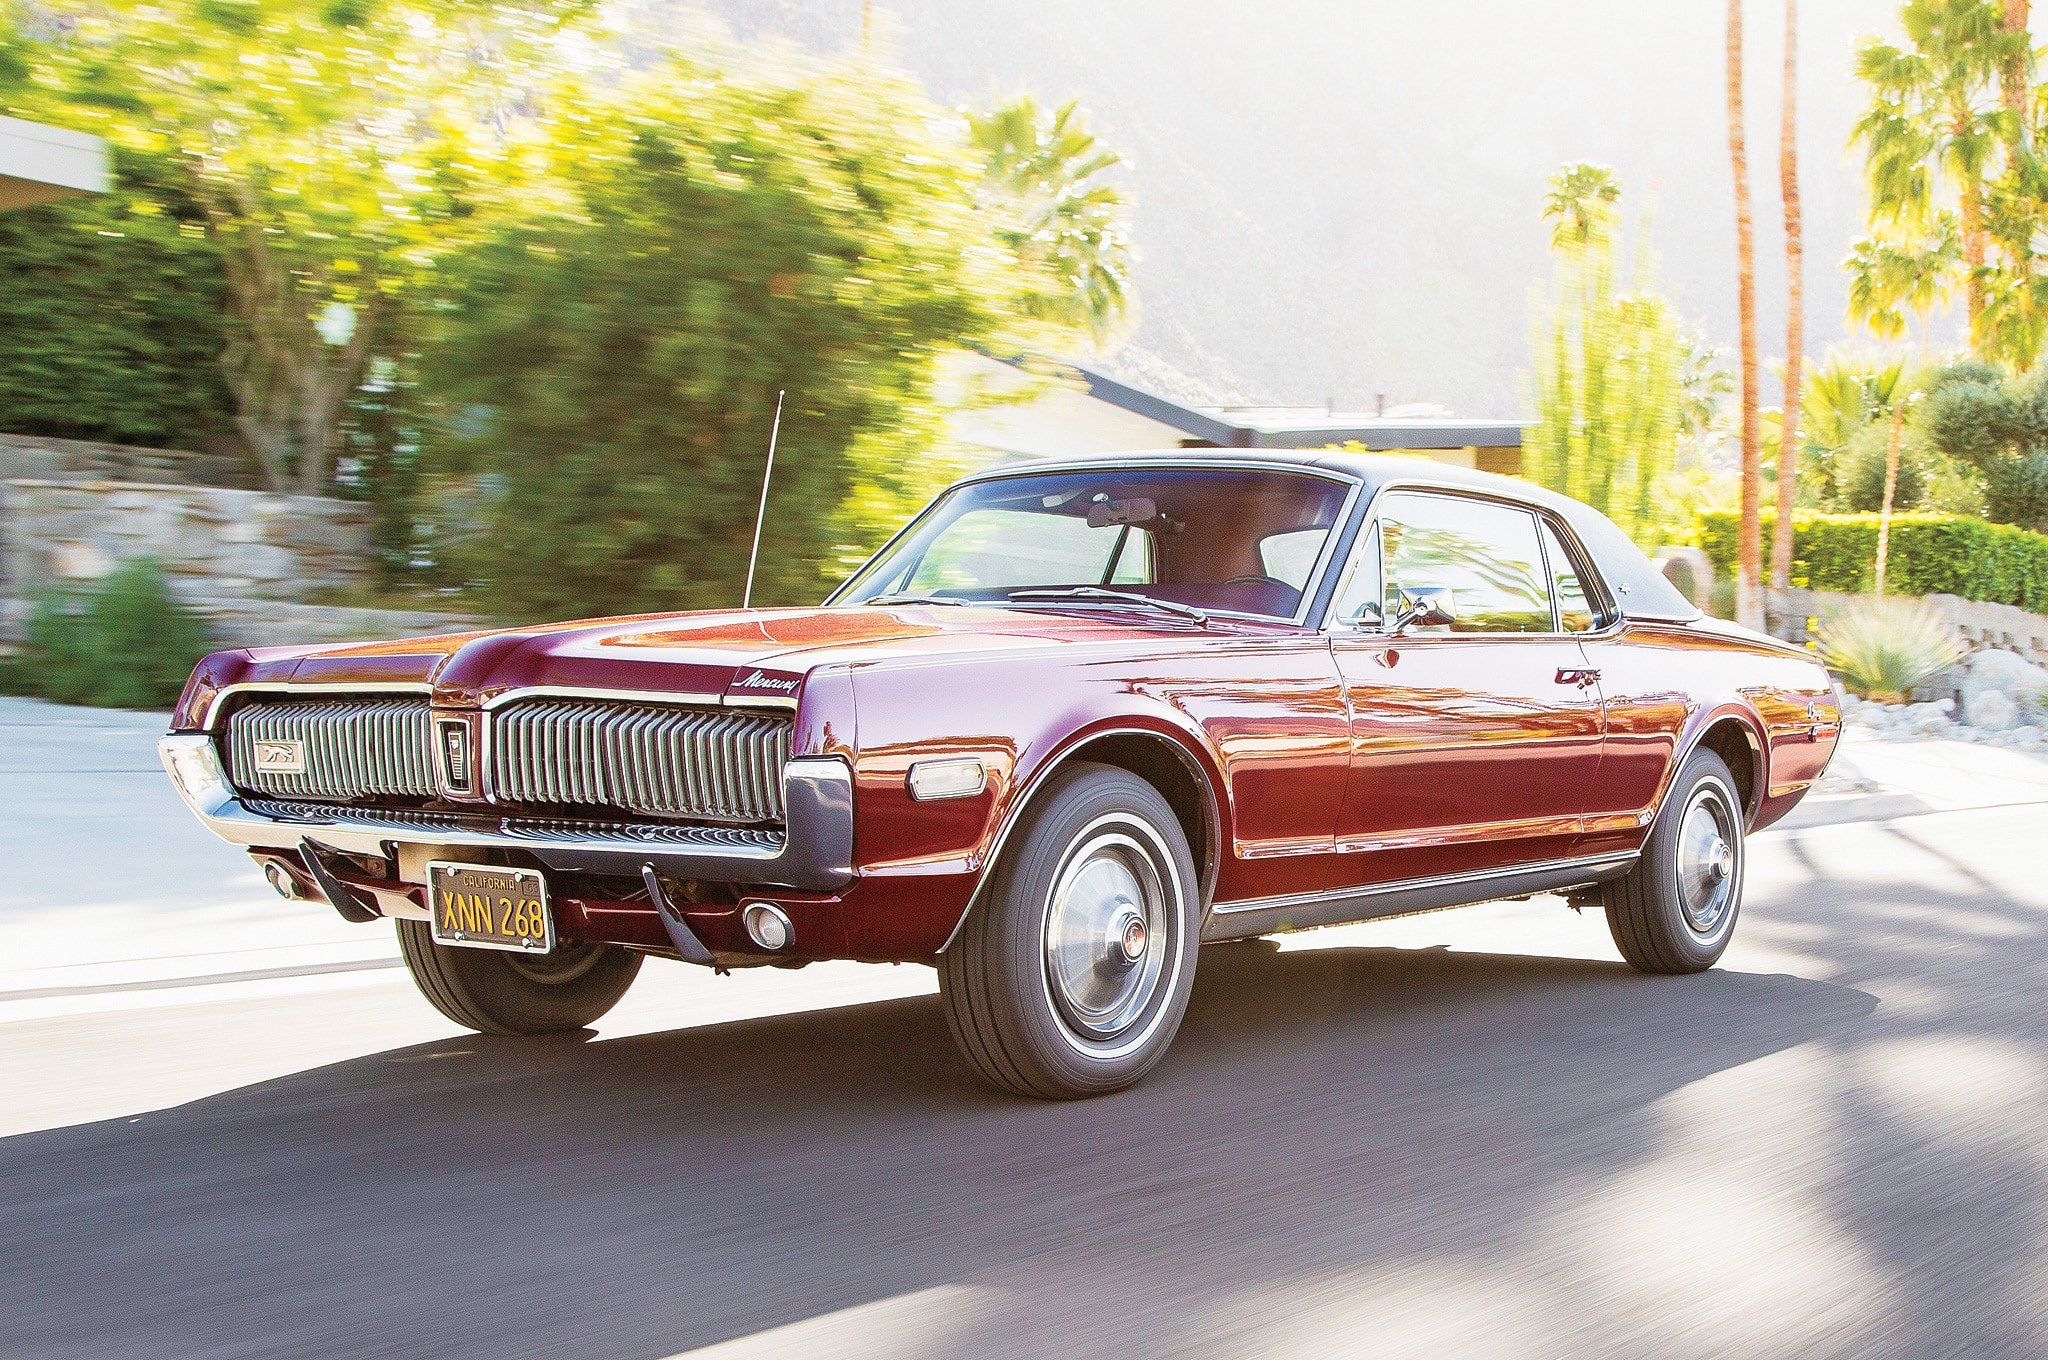 1967 1968 Mercury Cougar Front Three Quarter In Motion